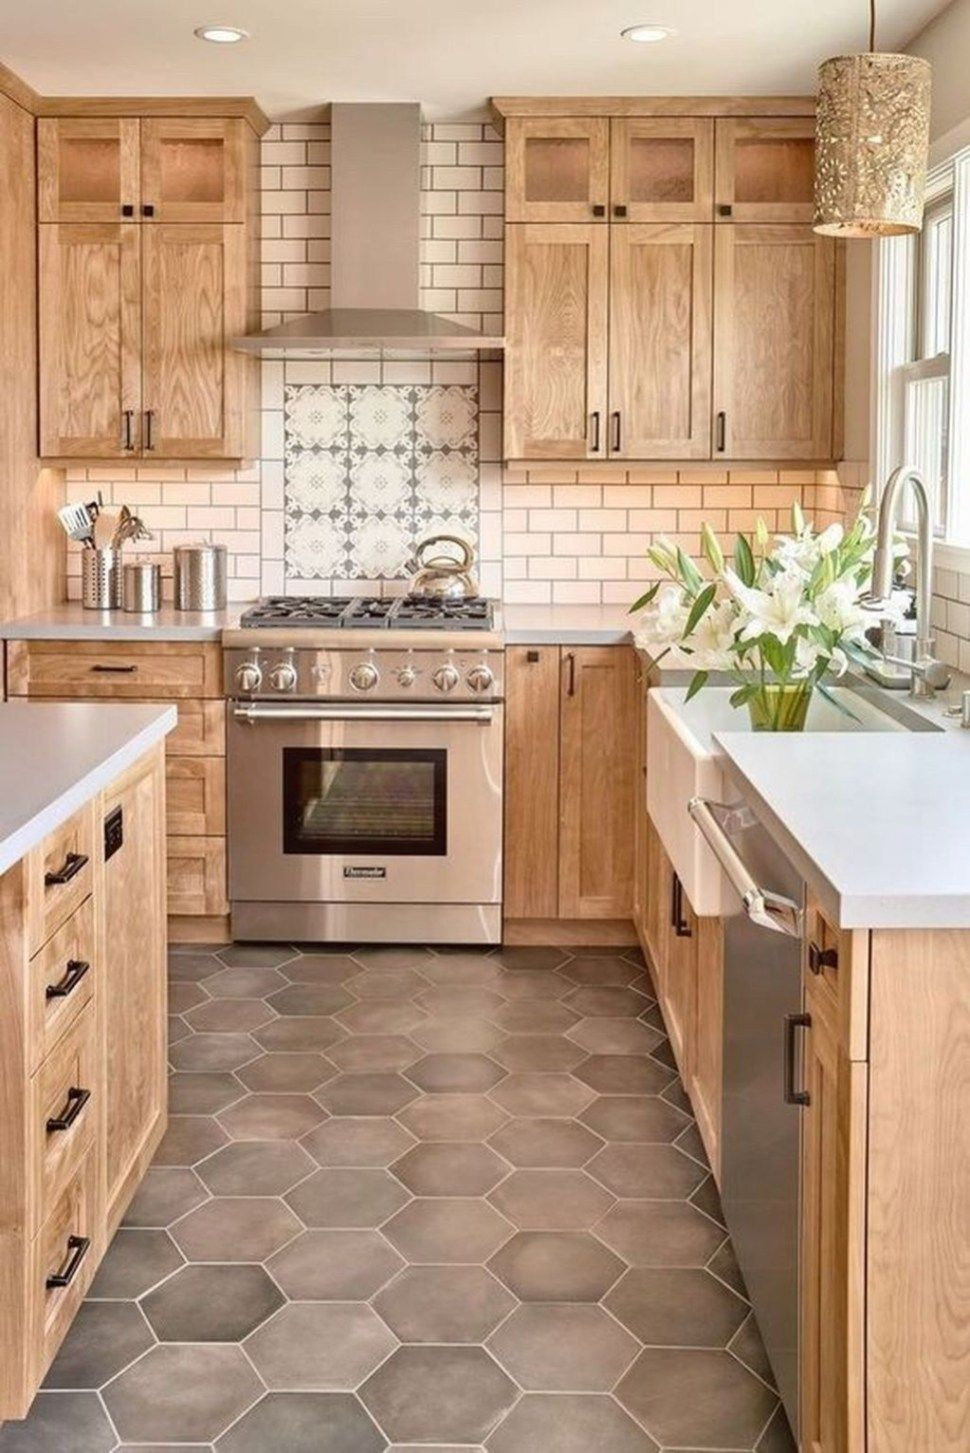 20 Totally Inspiring Kitchen Design Ideas Farmhouse Kitchen